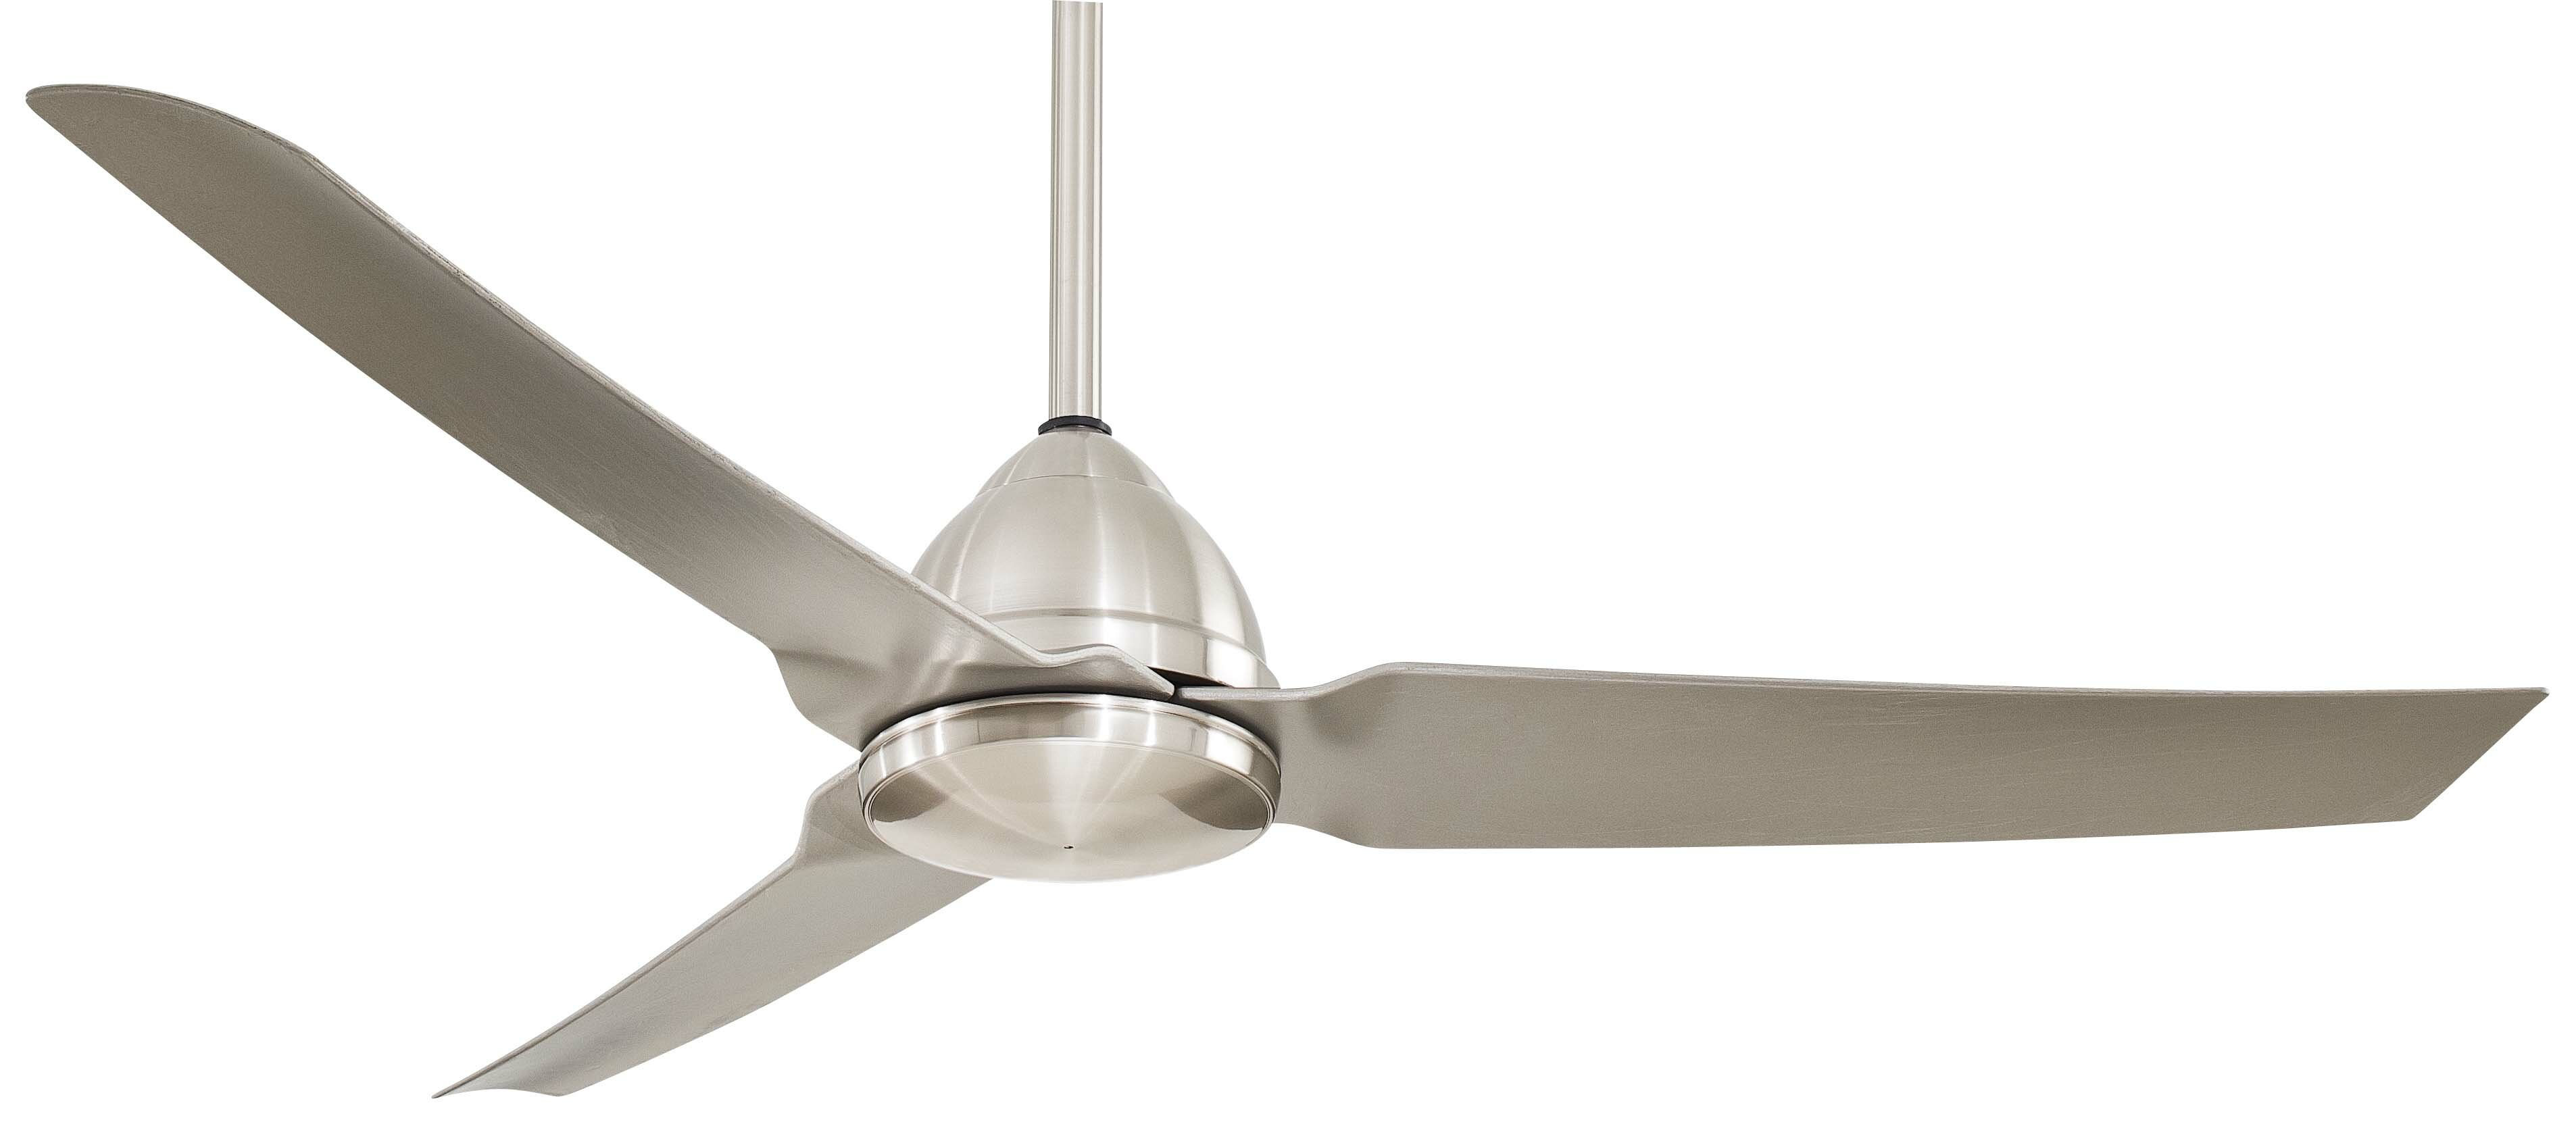 "Minka Aire 54"" Java 3 Blade Ceiling Fan with Remote & Reviews"